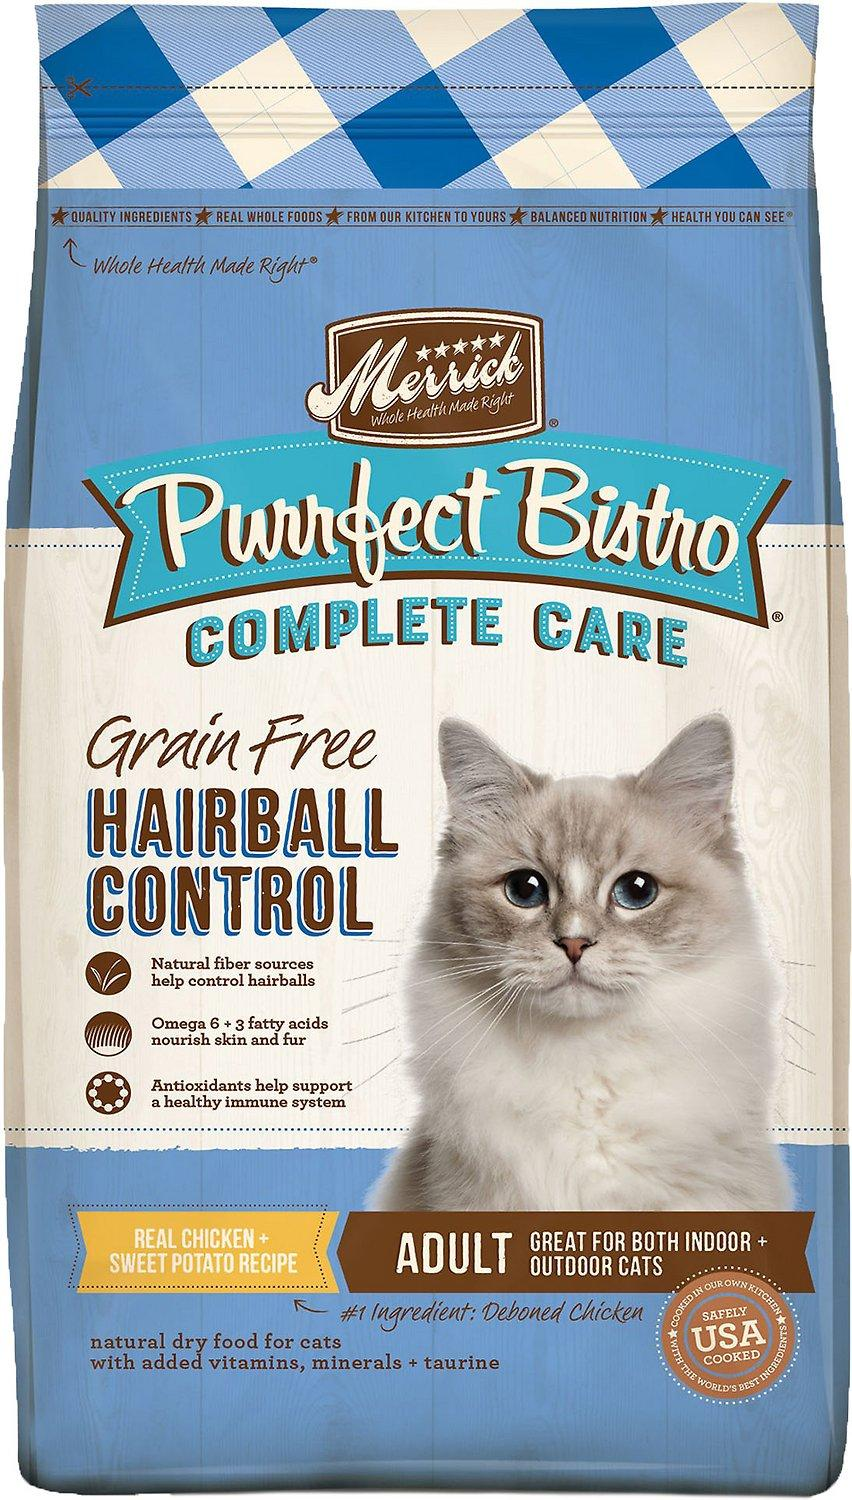 Merrick Purrfect Bistro Complete Care Hairball Control Chicken & Sweet Potato Grain-Free Dry Cat Food, 12-lb